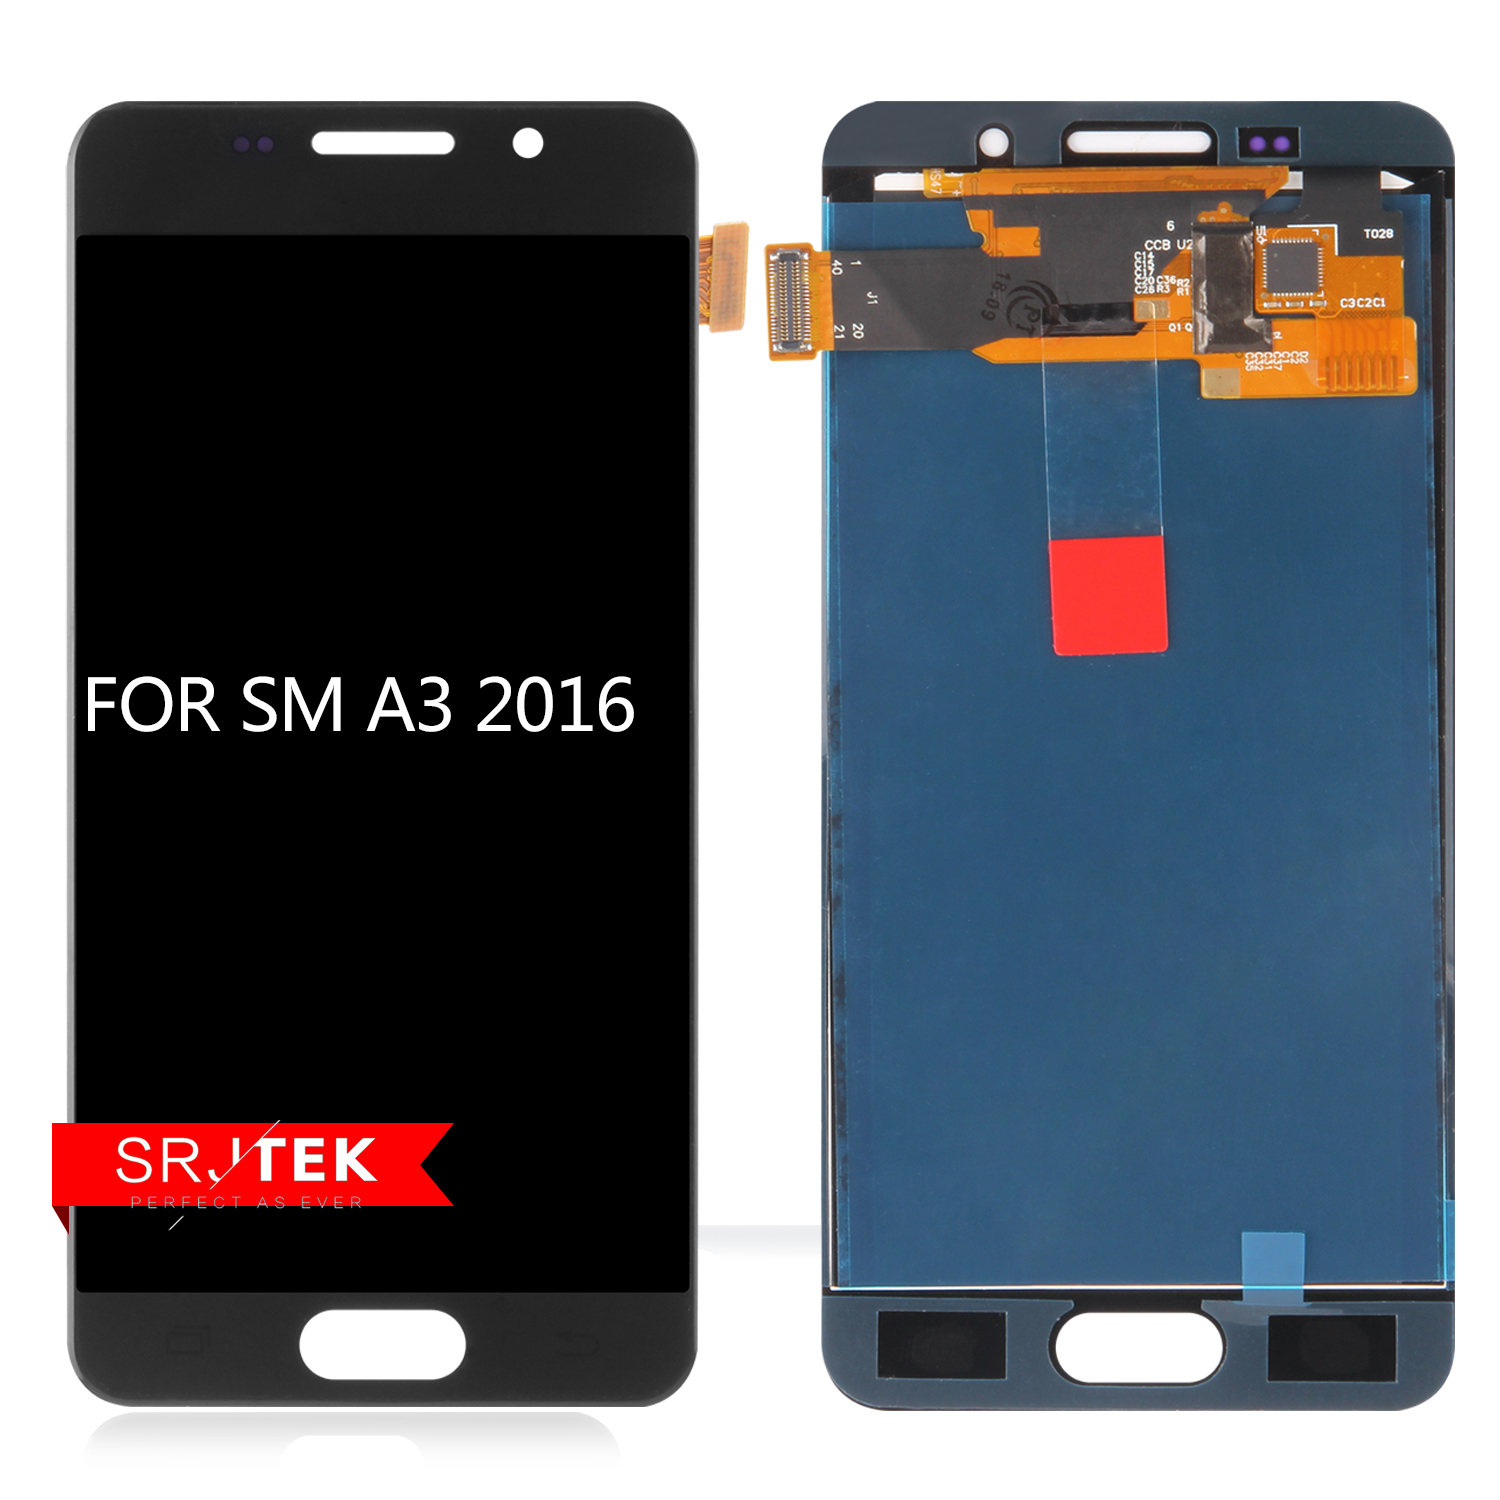 For SAMSUNG Galaxy A3 2016 A310 A310F LCD Display Touch Screen Digitizer Replacement Parts LCD For Samsung A3 2016 A310 DisplayFor SAMSUNG Galaxy A3 2016 A310 A310F LCD Display Touch Screen Digitizer Replacement Parts LCD For Samsung A3 2016 A310 Display